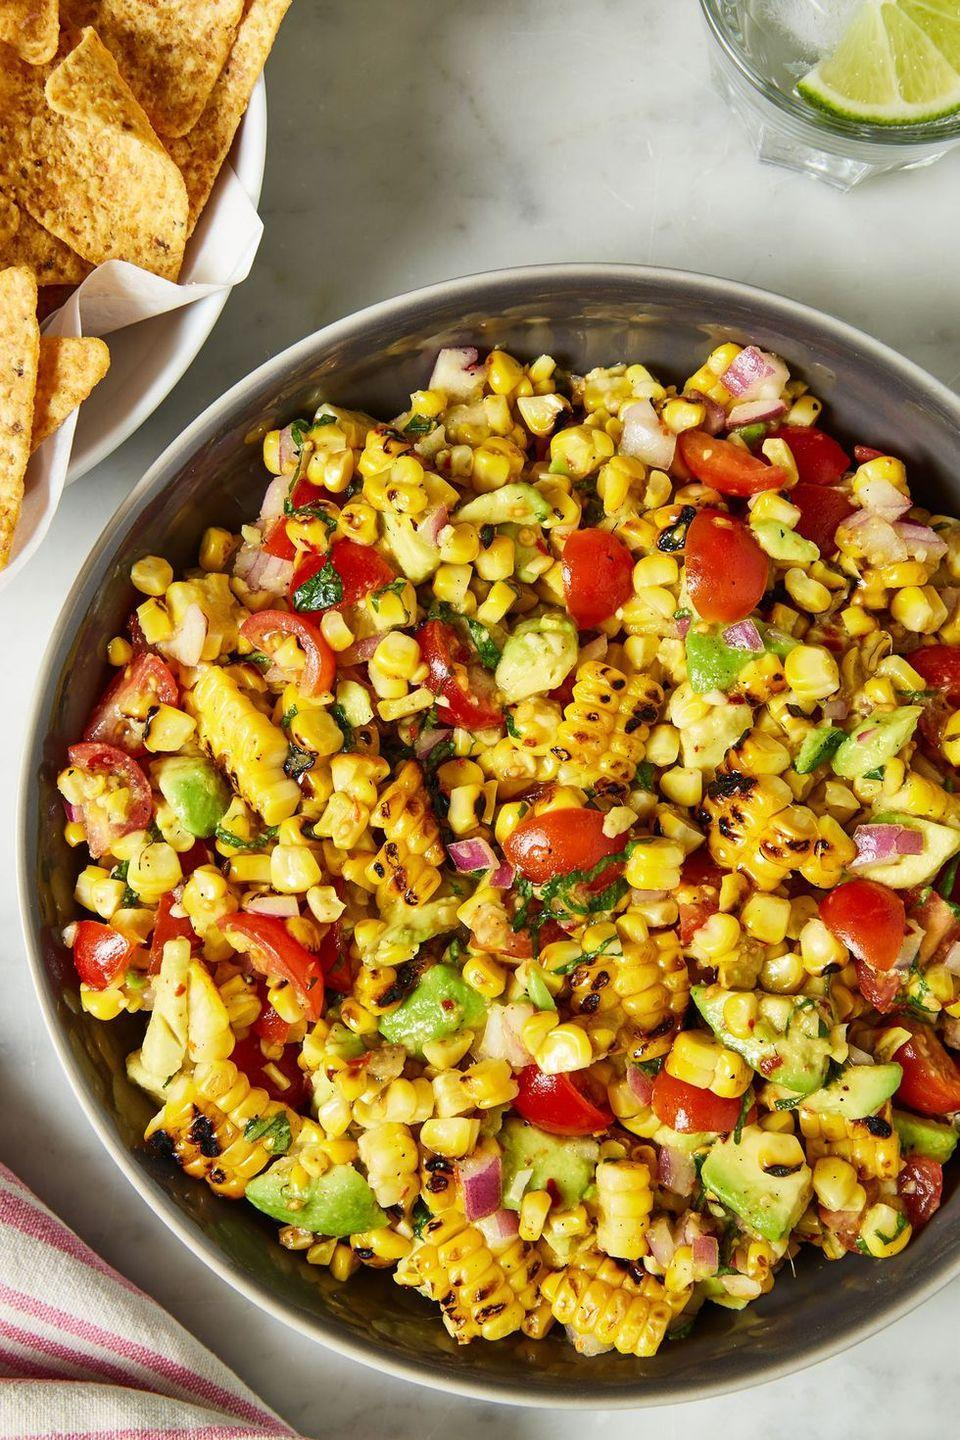 """<p>We love a good <a href=""""https://www.delish.com/uk/cooking/a32570797/easy-homemade-salsa-recipe/"""" rel=""""nofollow noopener"""" target=""""_blank"""" data-ylk=""""slk:Homemade Salsa"""" class=""""link rapid-noclick-resp"""">Homemade Salsa</a> in the summer. This one is especially good when sweet summer corn is in season. If you don't have a grill or grill pan, give your cobs a quick sear in a cast iron pan to get that smoky, charred flavour. You can also use frozen corn, (they even sell it pre-charred!) just make sure it's fully defrosted and drained of excess moisture before you make your salsa. </p><p>Get the <a href=""""https://www.delish.com/uk/cooking/recipes/a35346040/best-corn-salsa-recipe/"""" rel=""""nofollow noopener"""" target=""""_blank"""" data-ylk=""""slk:Grilled Corn Salsa"""" class=""""link rapid-noclick-resp"""">Grilled Corn Salsa</a> recipe.</p>"""